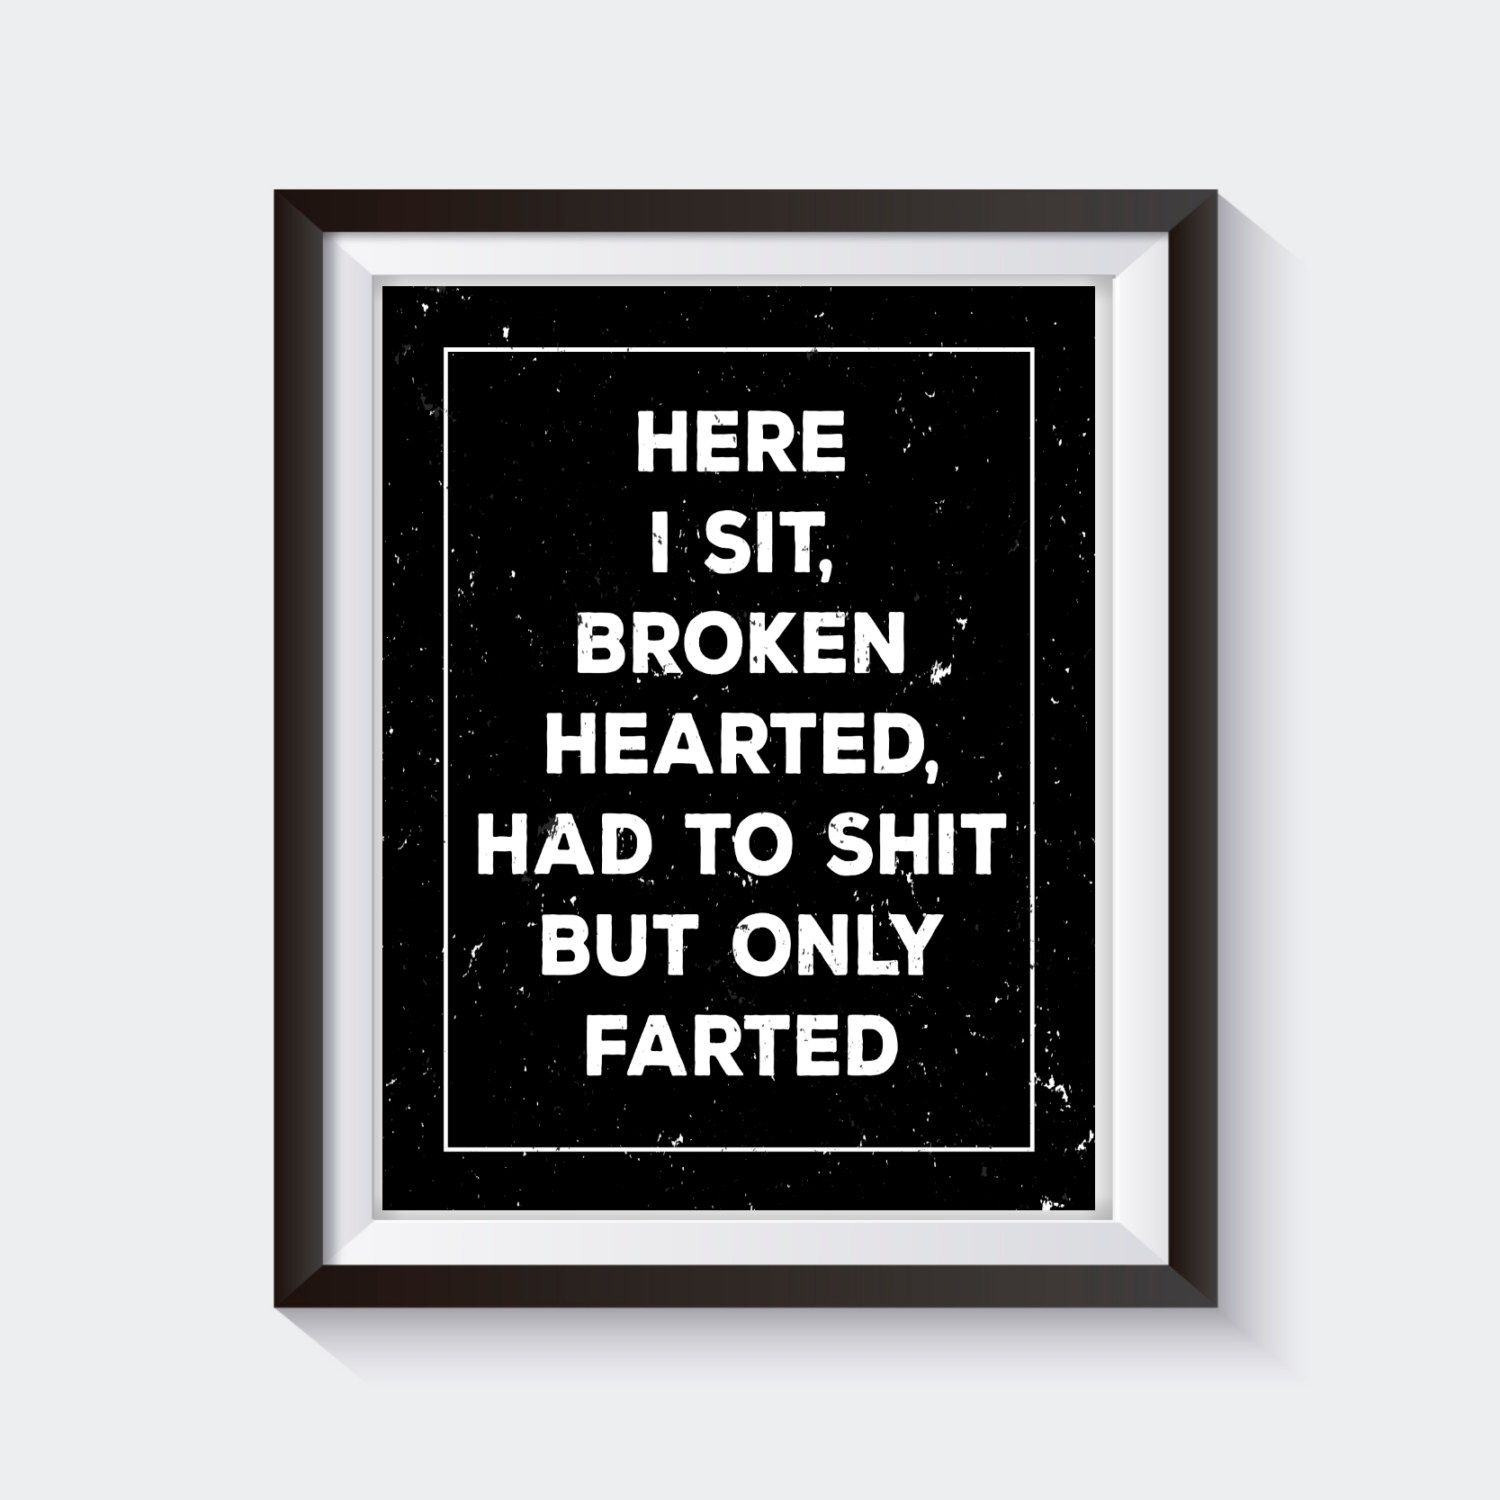 Here I Sit Broken Hearted, Funny Bathroom Print, Funny Bathroom Pertaining To Current Framed Art Prints For Bathroom (View 11 of 15)